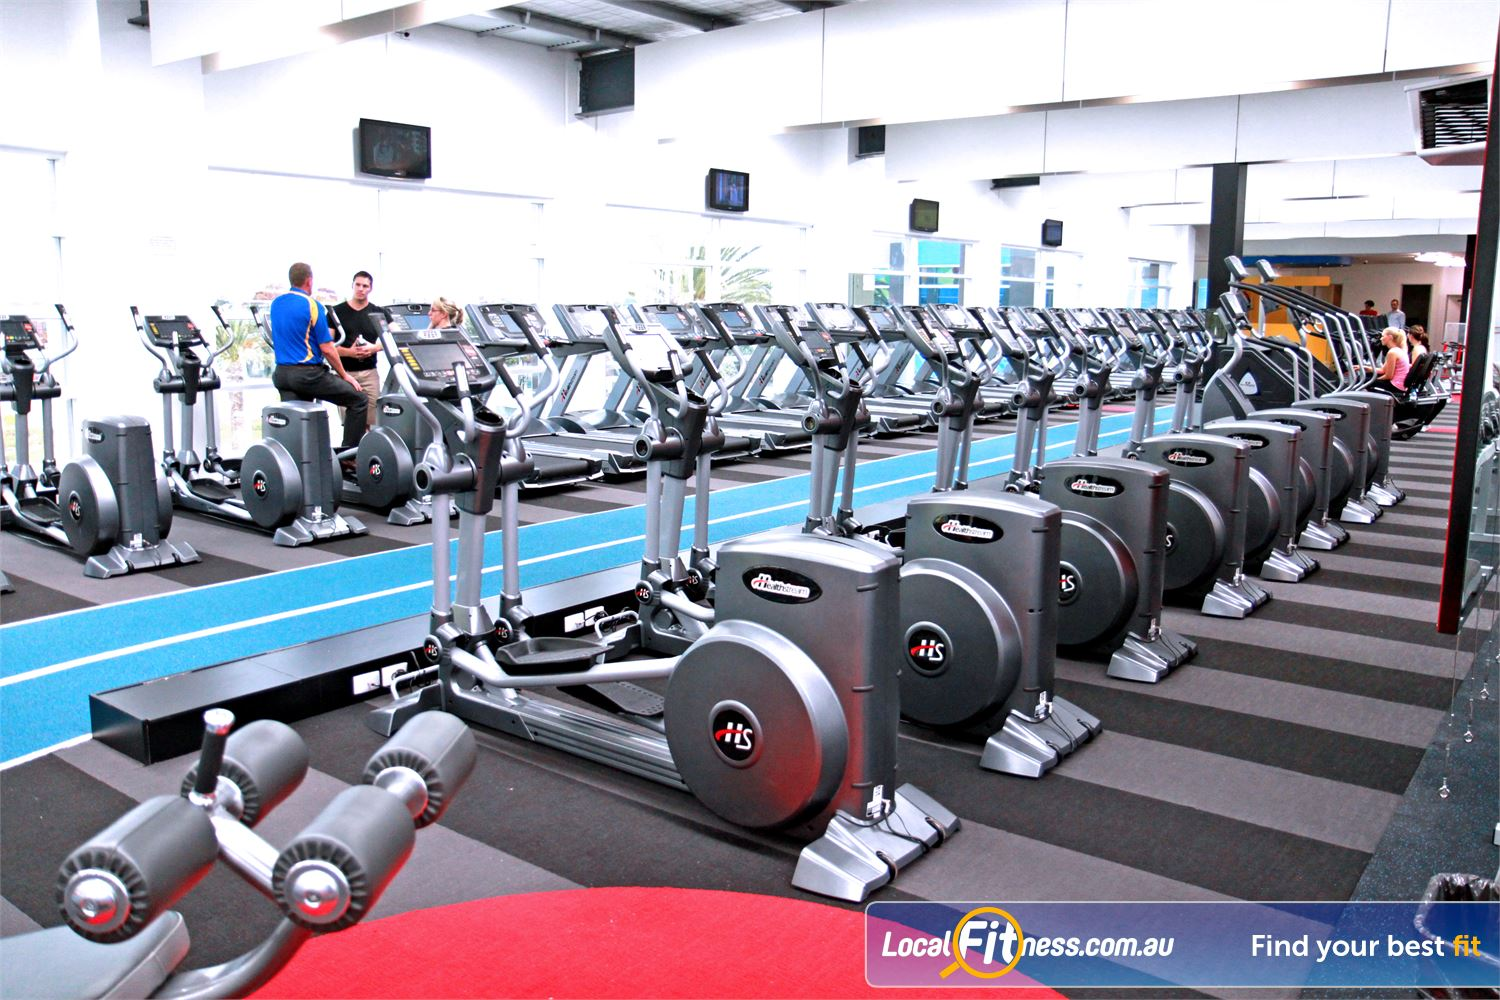 Genesis Fitness Clubs Near Maribyrnong Vary your cardio and utilise our indoor running track.